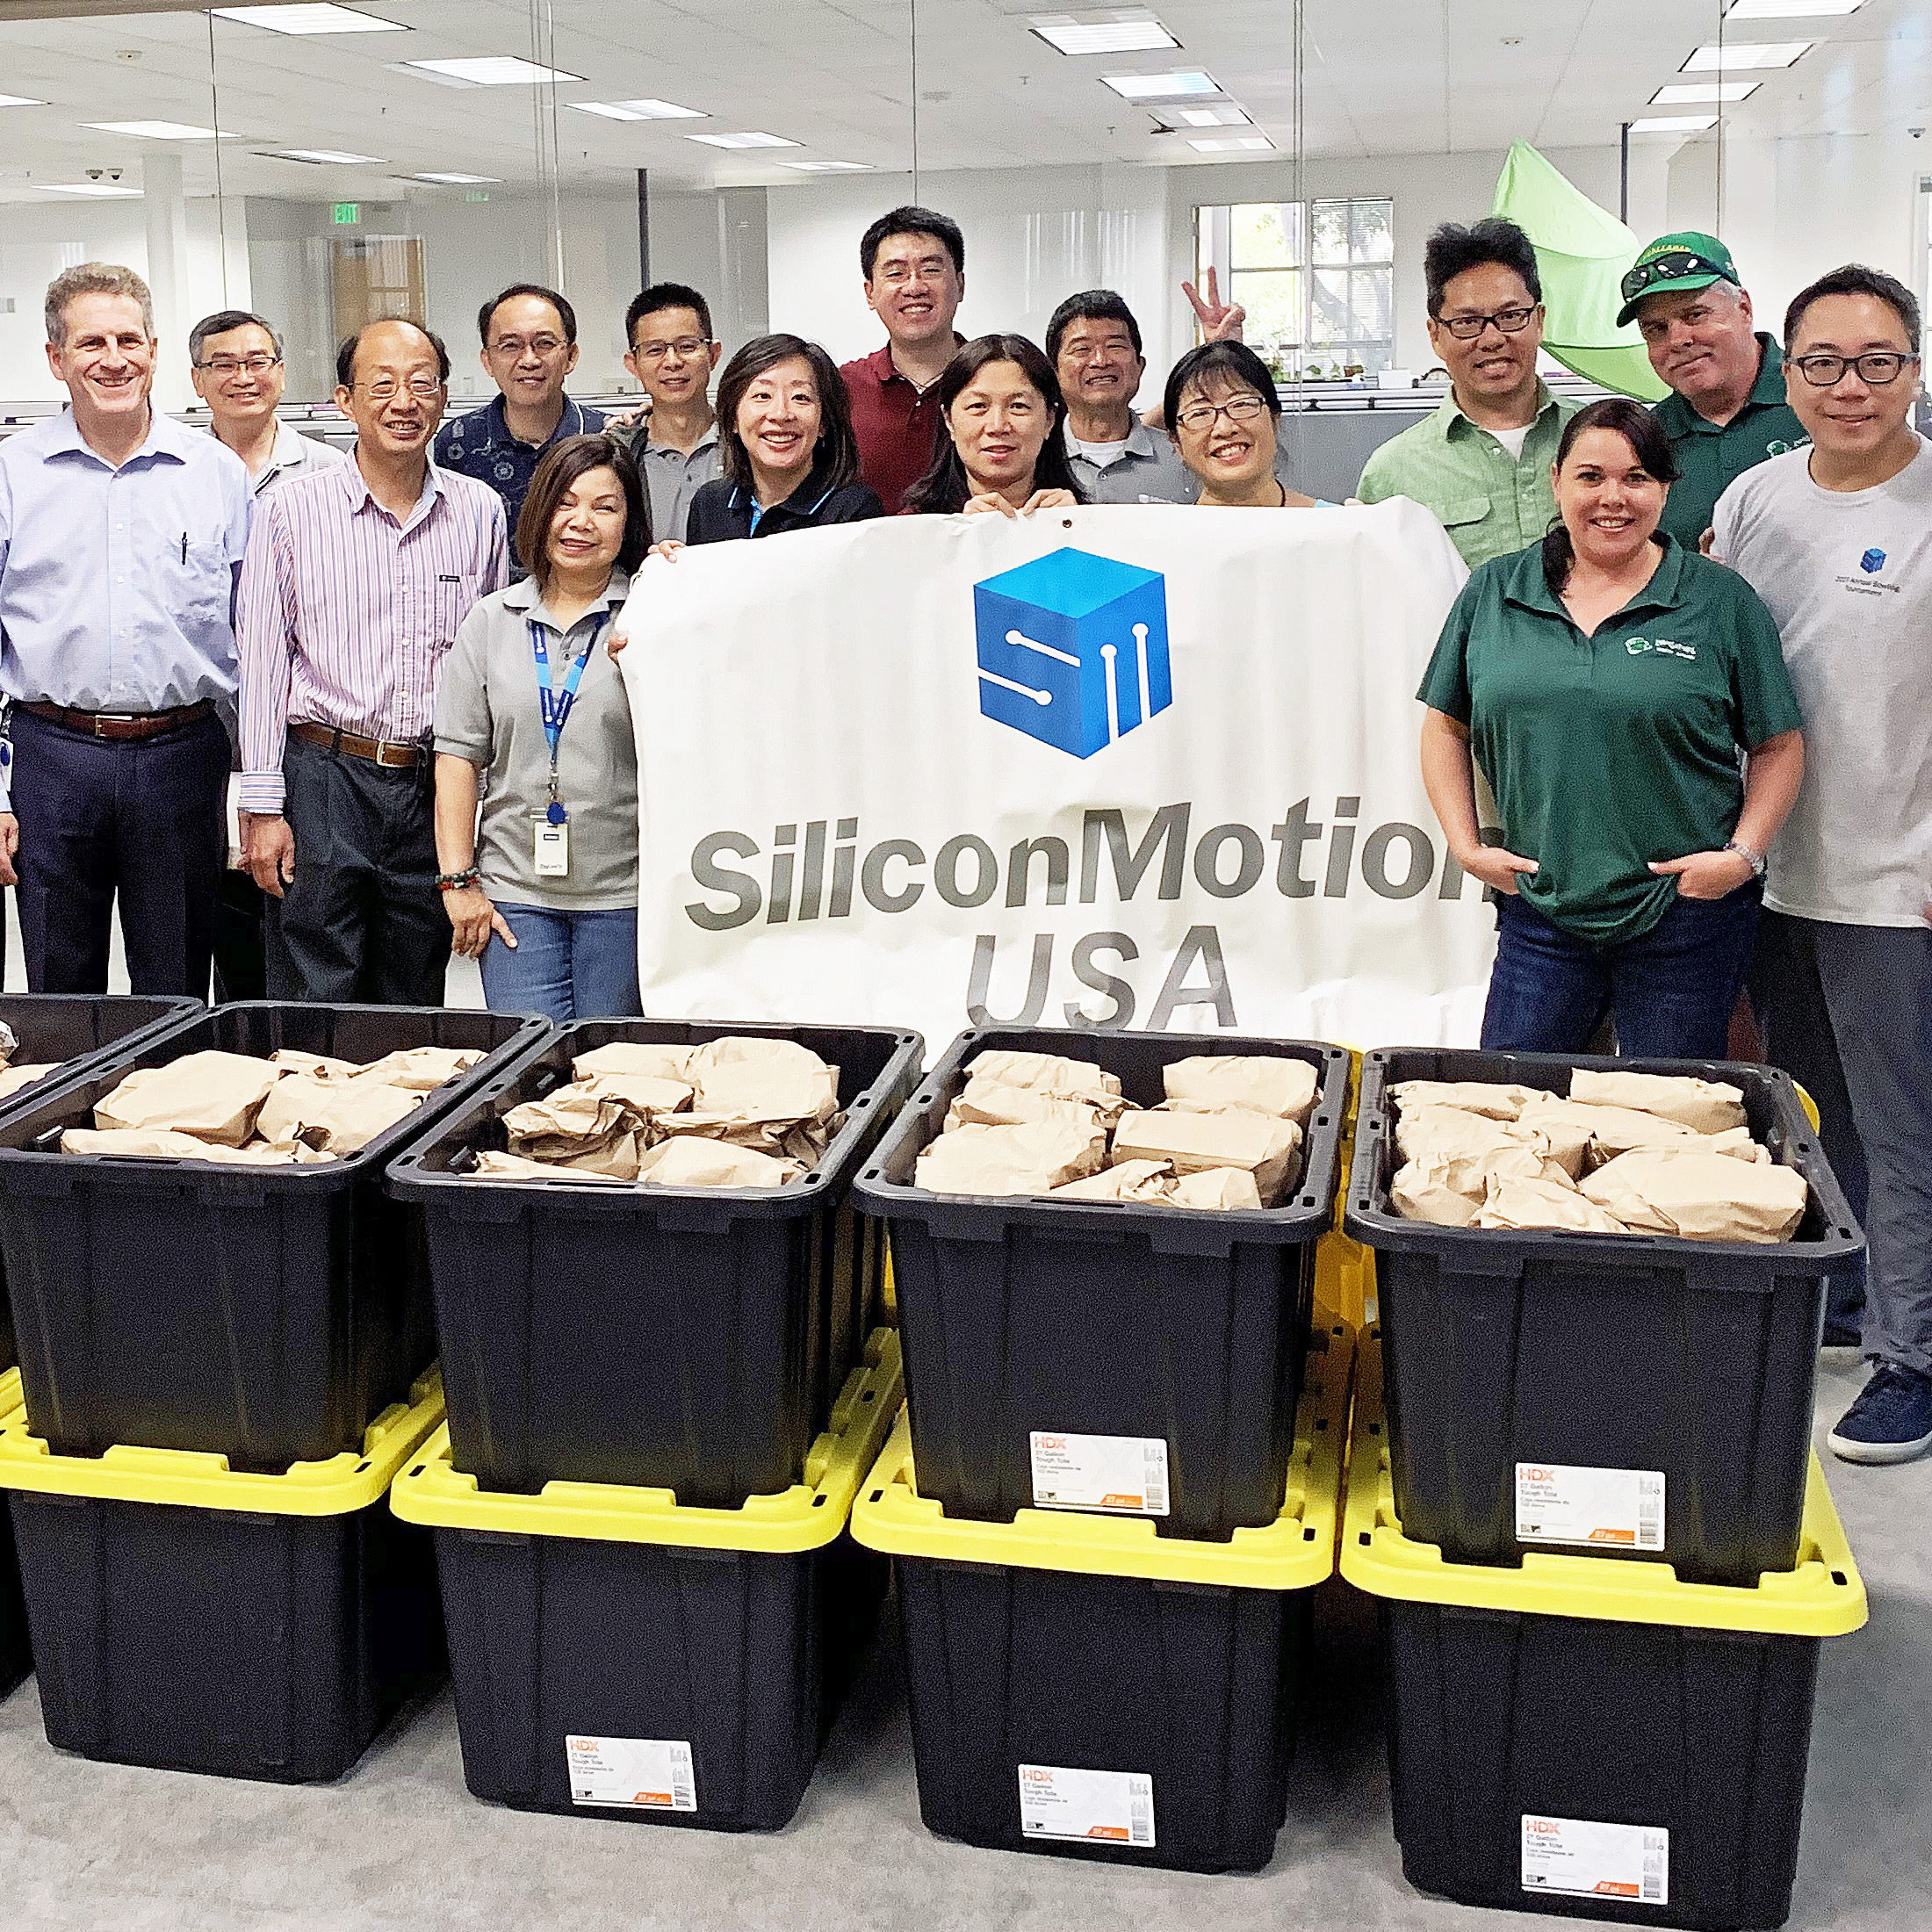 Serve the food with love, Silicon Motion assembled 500 lunch bags and donated them to  Loaves & Fishes Family Kitchen for our hungry neighbors in needs.